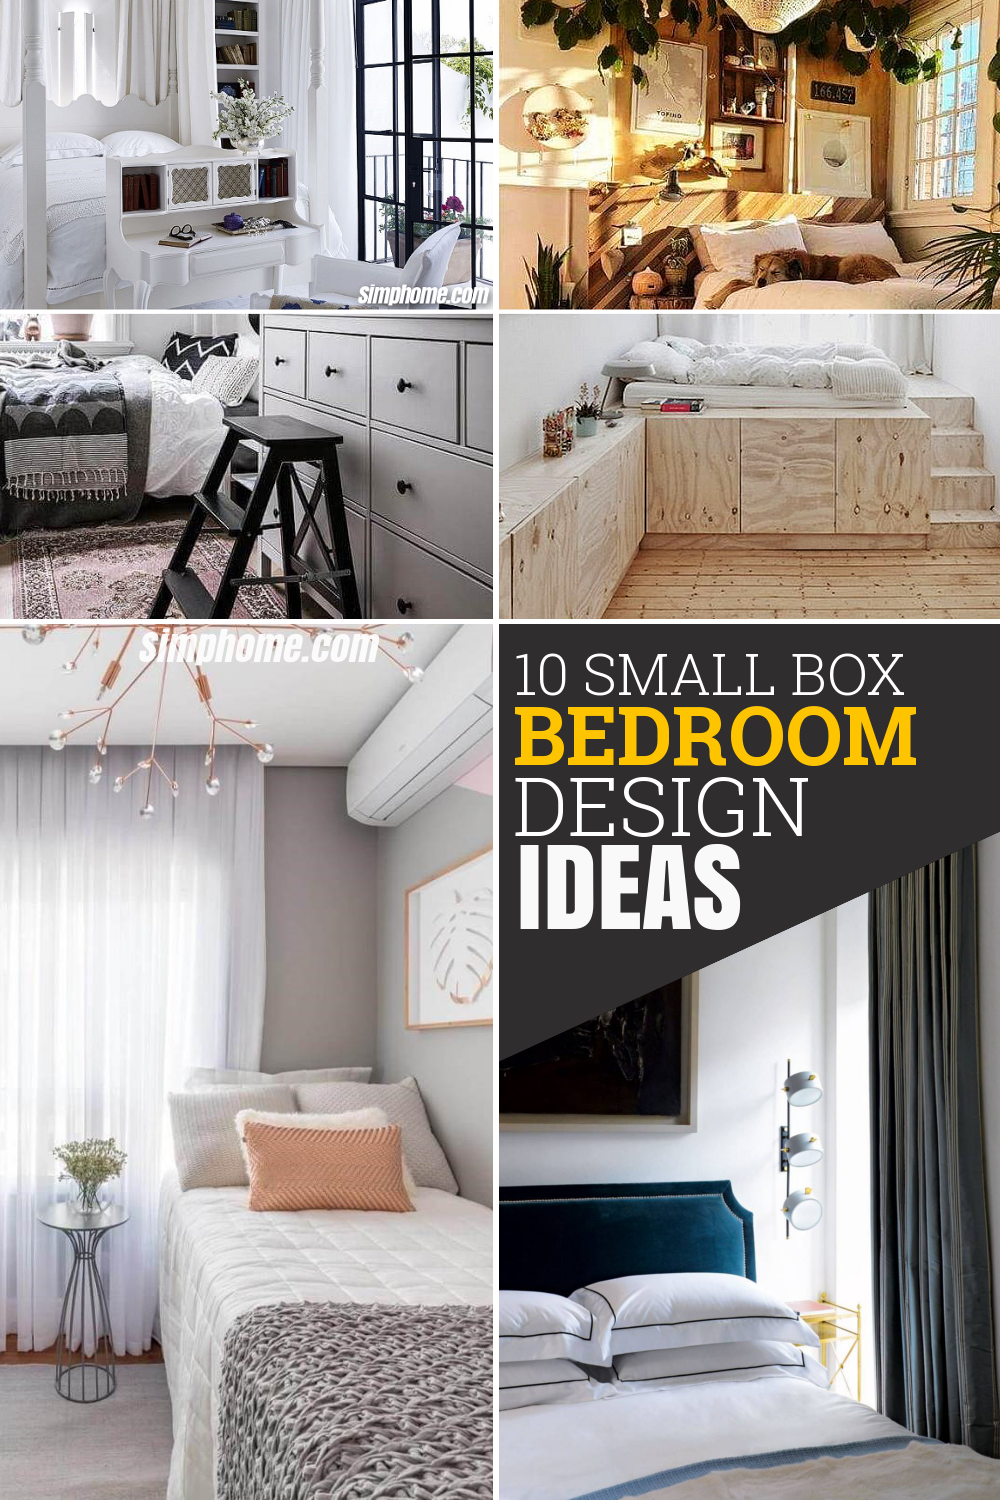 10 Small Box Room Bedroom Design Ideas via Simphome com Pinterest image